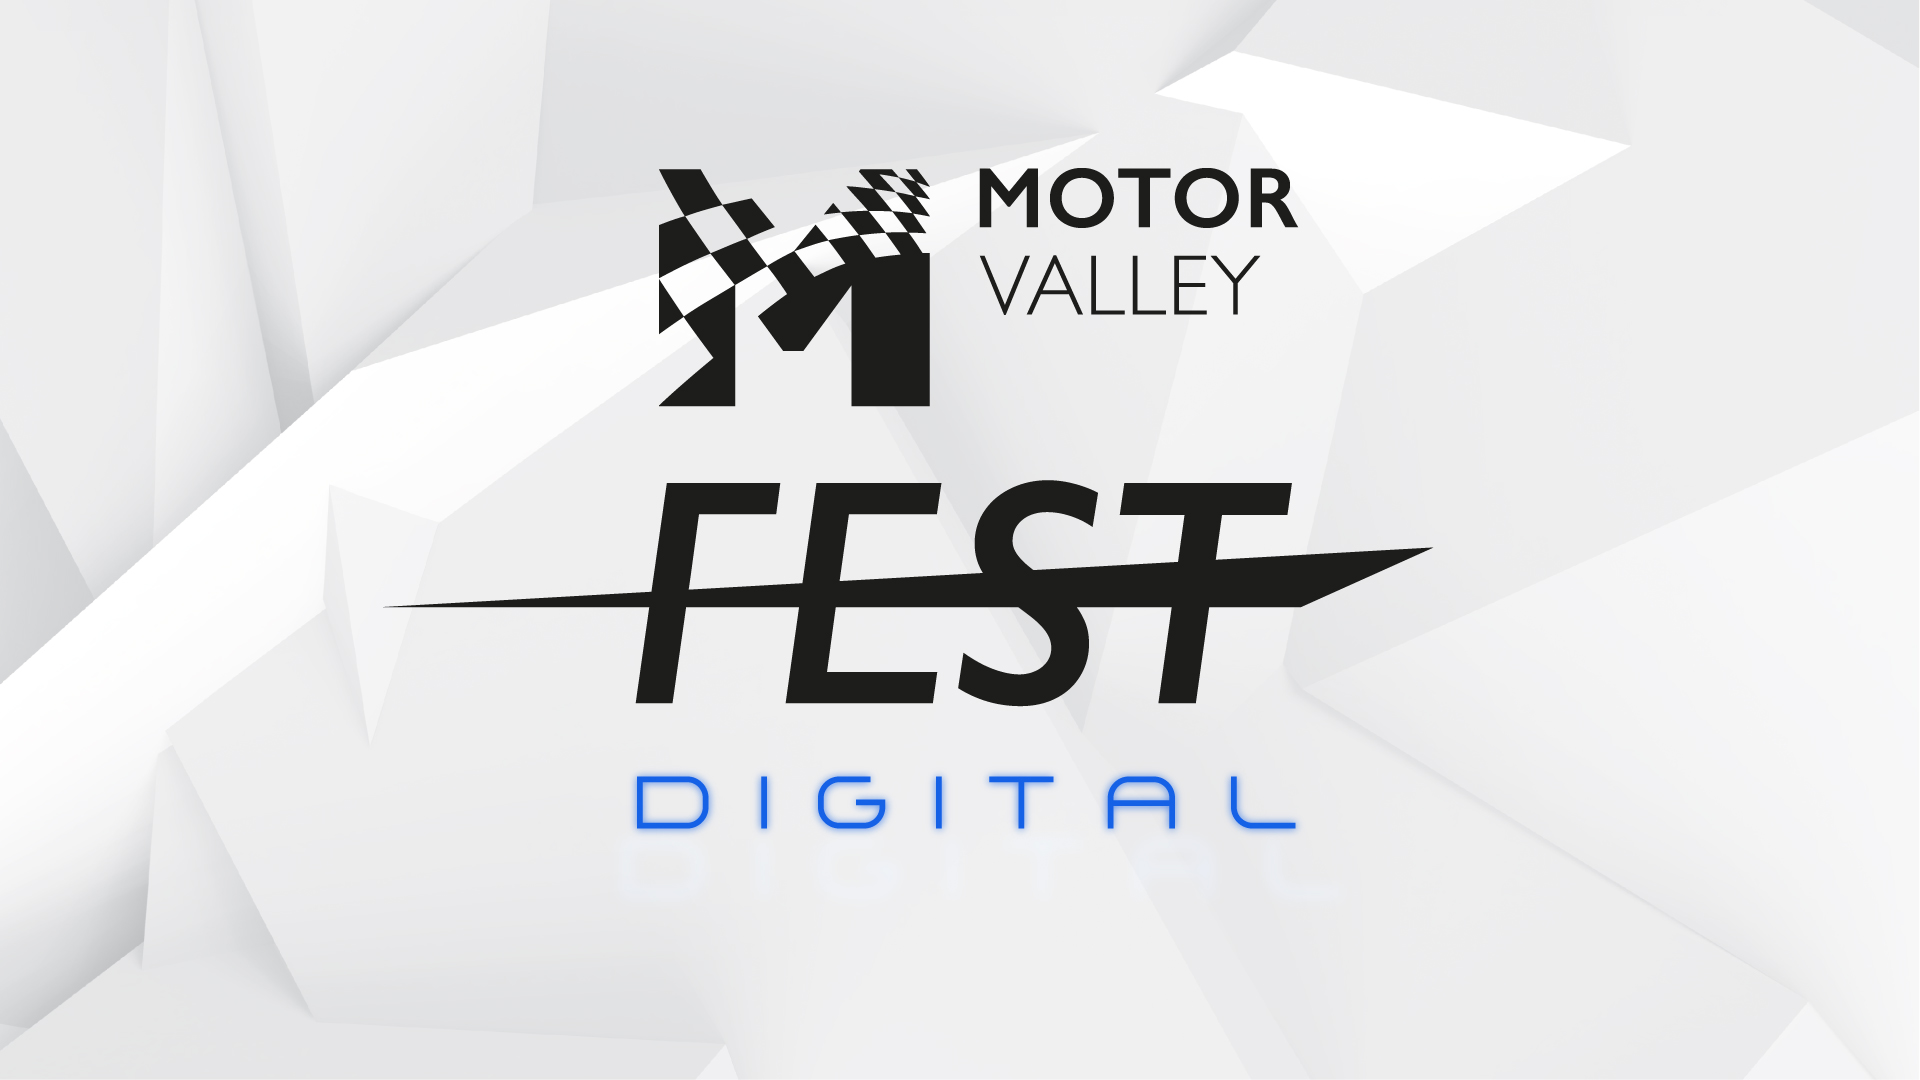 Emilia-Romagna's Motor Valley Fest to take on a Digital Format when it returns in May 2020.